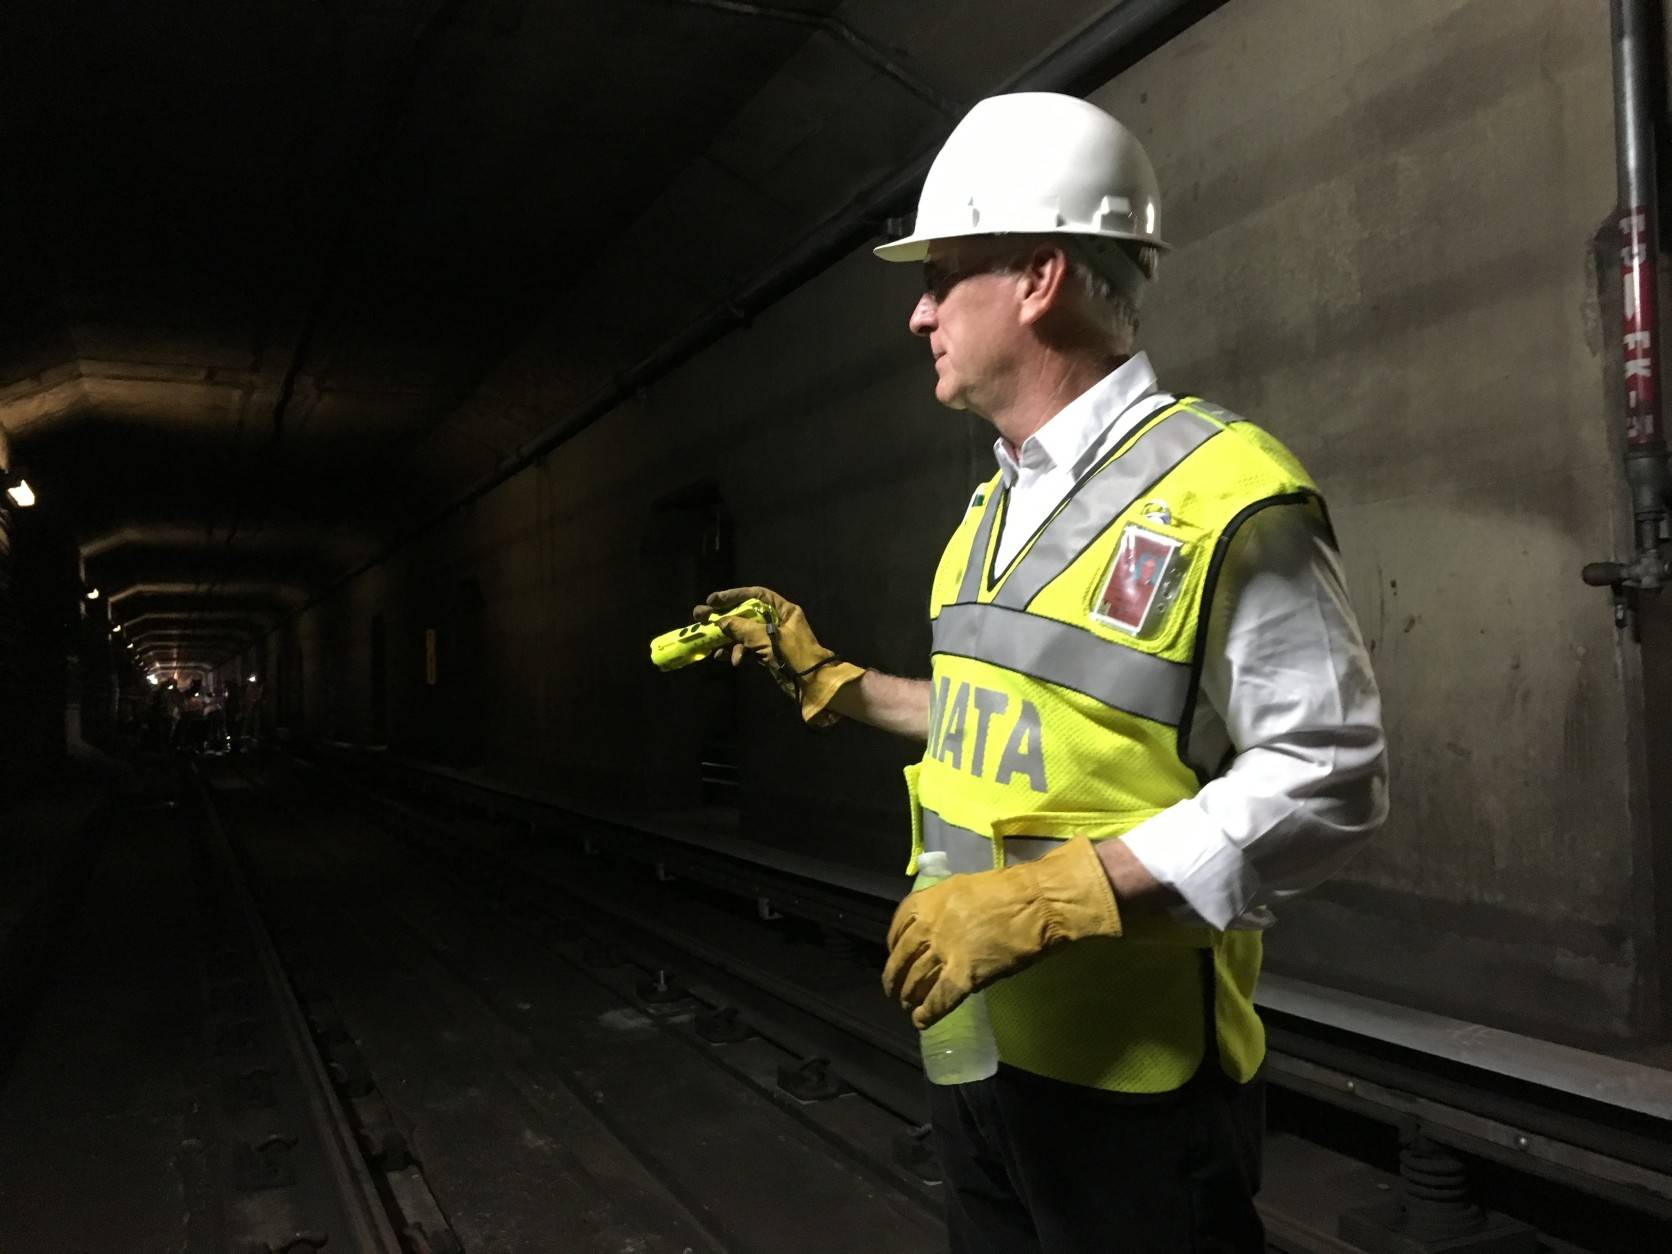 Metro GM Paul Wiedefeld wants to cut late-night Metro service even after the track work is done, but the DC Council has other ideas. (AP Photo/Ben Nuckols)